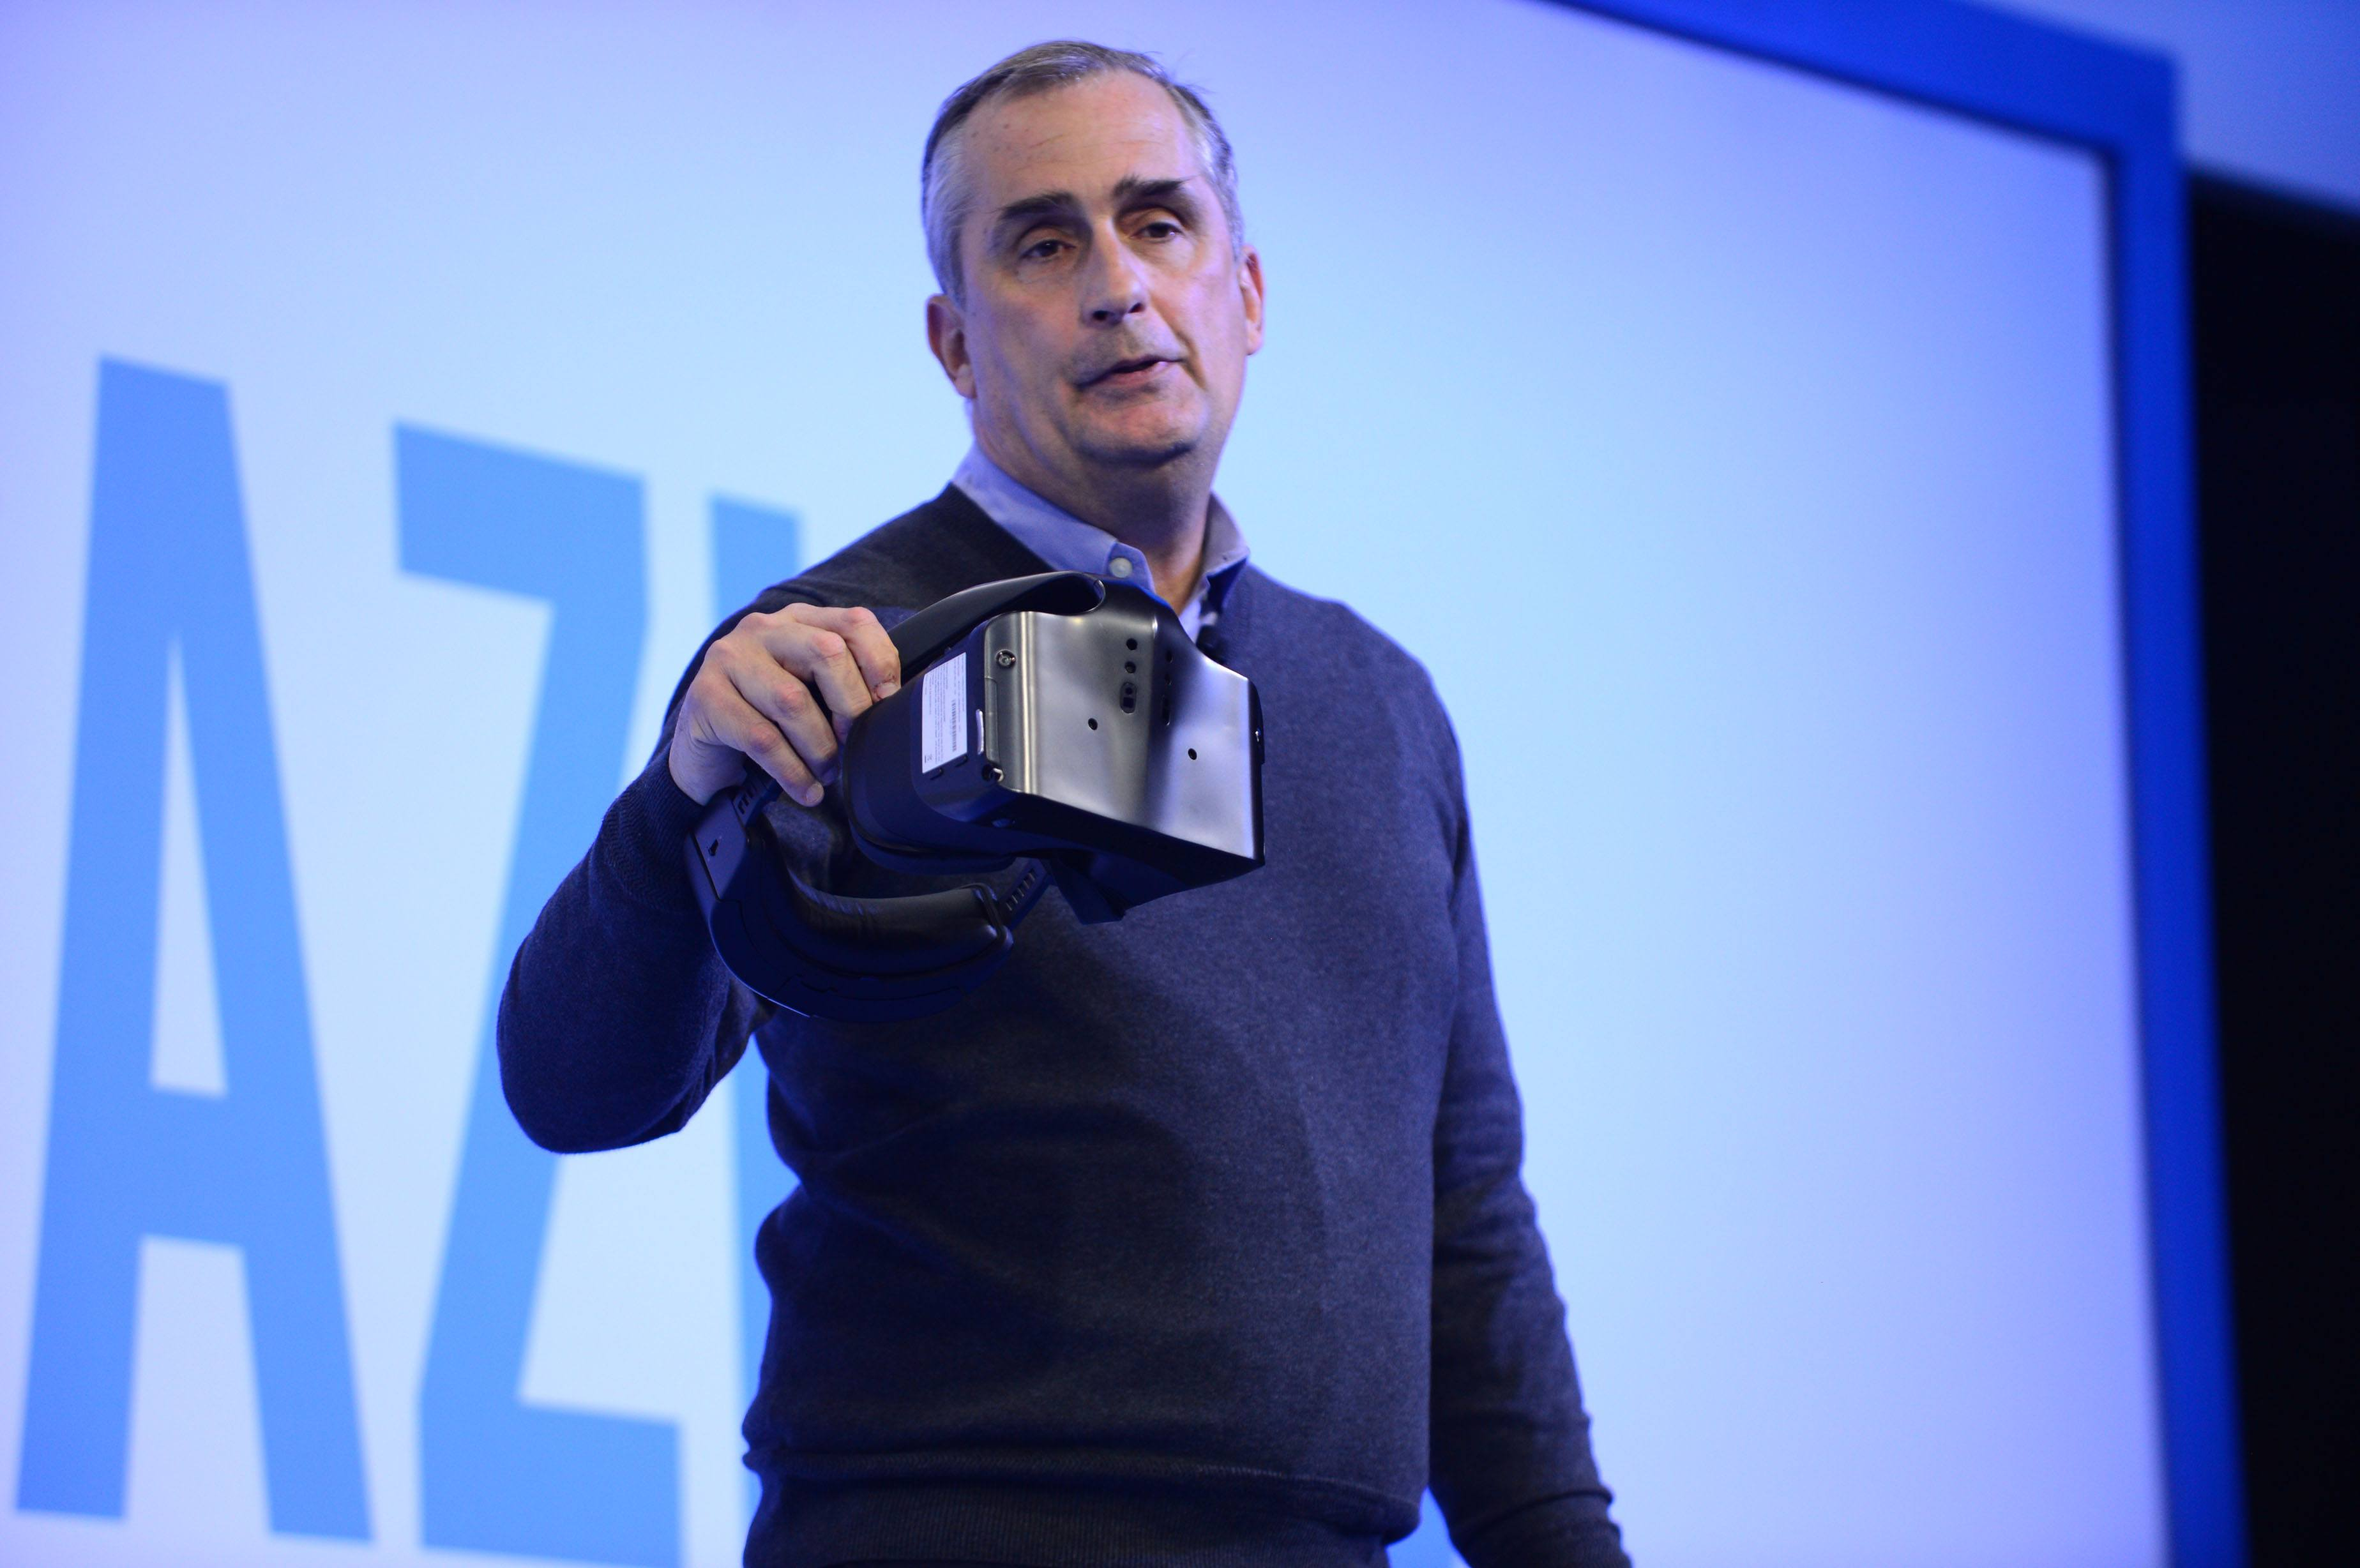 Brian Krzanich, Intel chief executive officers, displays the Project Alloy all-in-one virtual reality headset at a company news conference on Wednesday, Jan. 4, 2017, in Las Vegas. Intel Corporation presents new technology at the 2017 International Consumer Electronics Show. The event runs from Jan. 5 to Jan. 8, 2017, in Las Vegas. (CREDIT: Walden Kirsch/Intel Corporation)